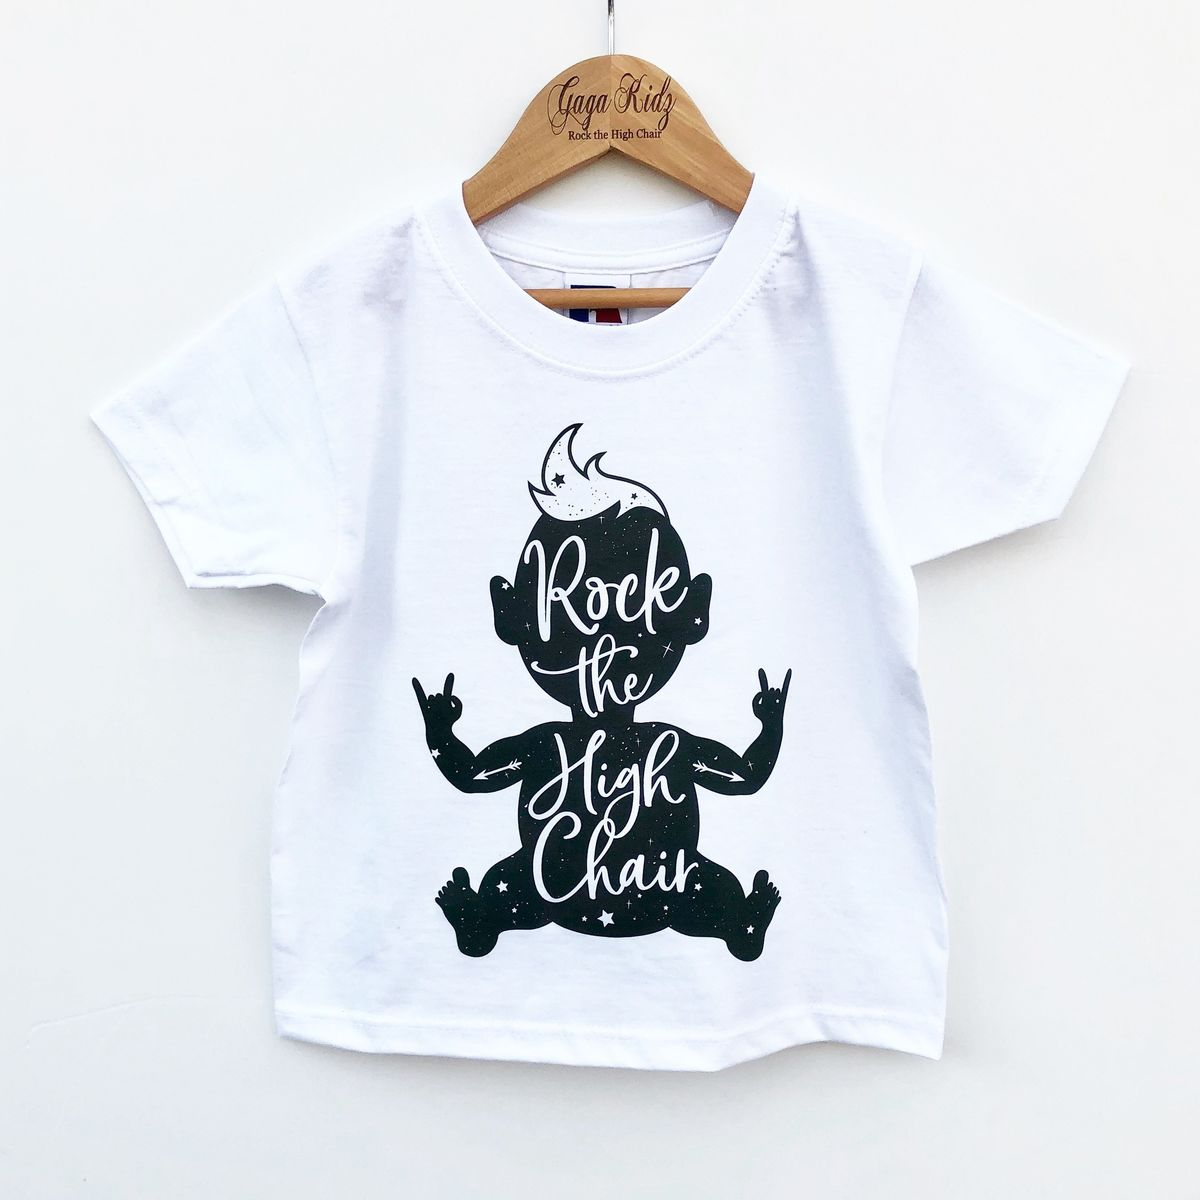 Rock the High Chair Black or White T-Shirt - product images  of